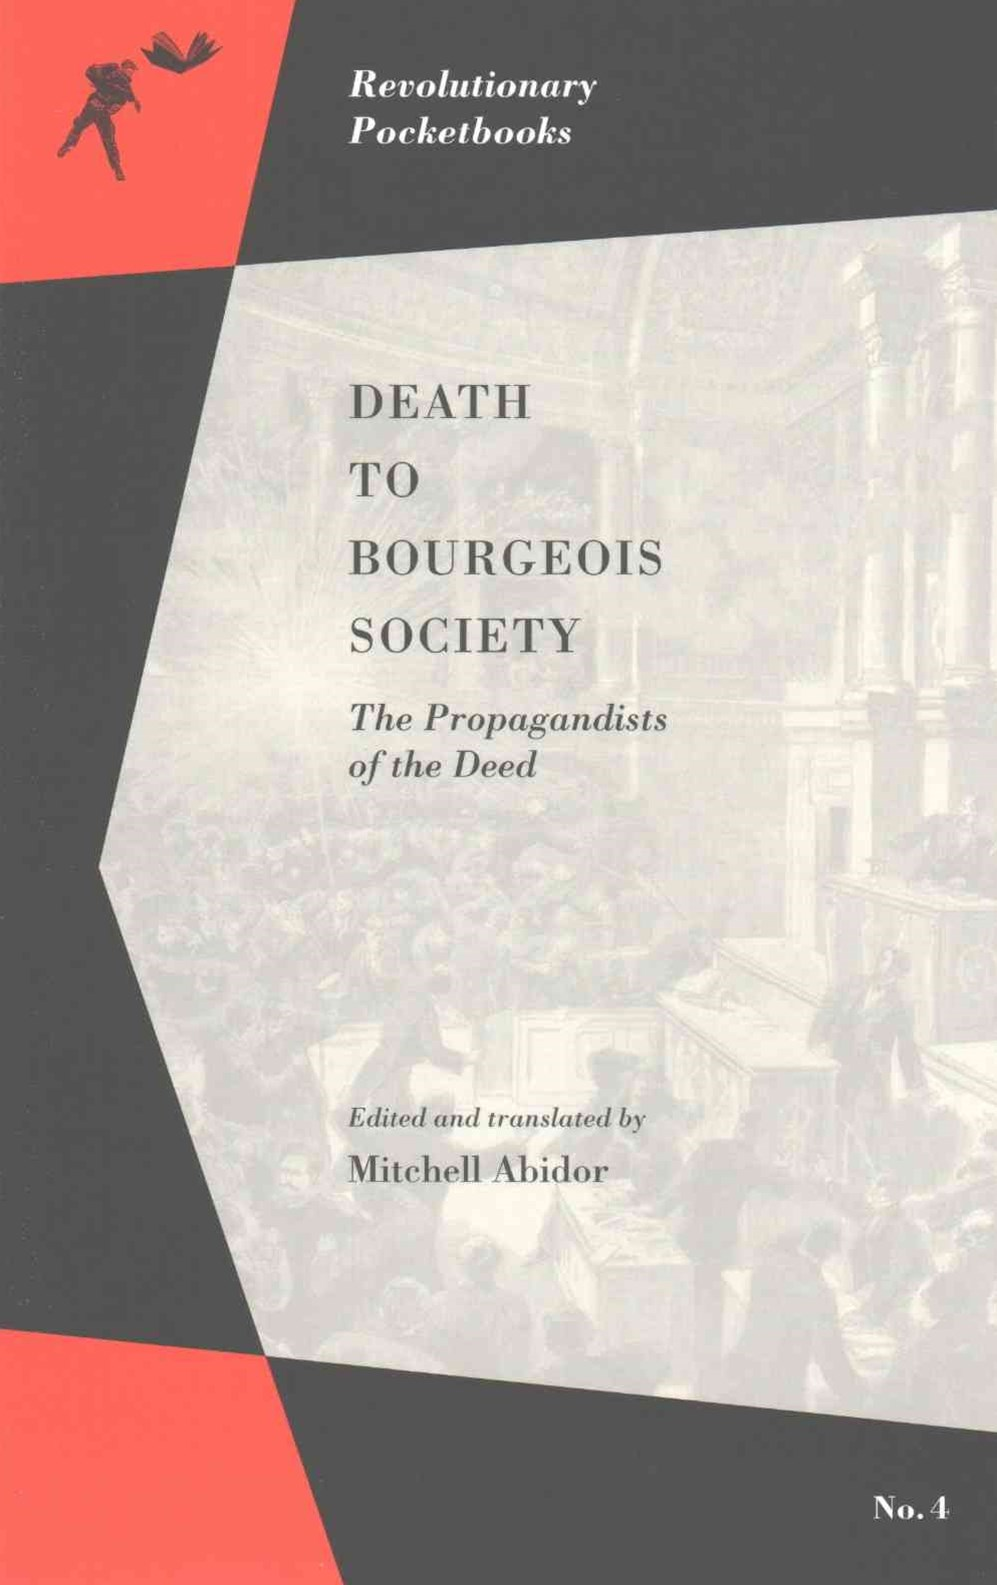 Death to Bourgeois Society